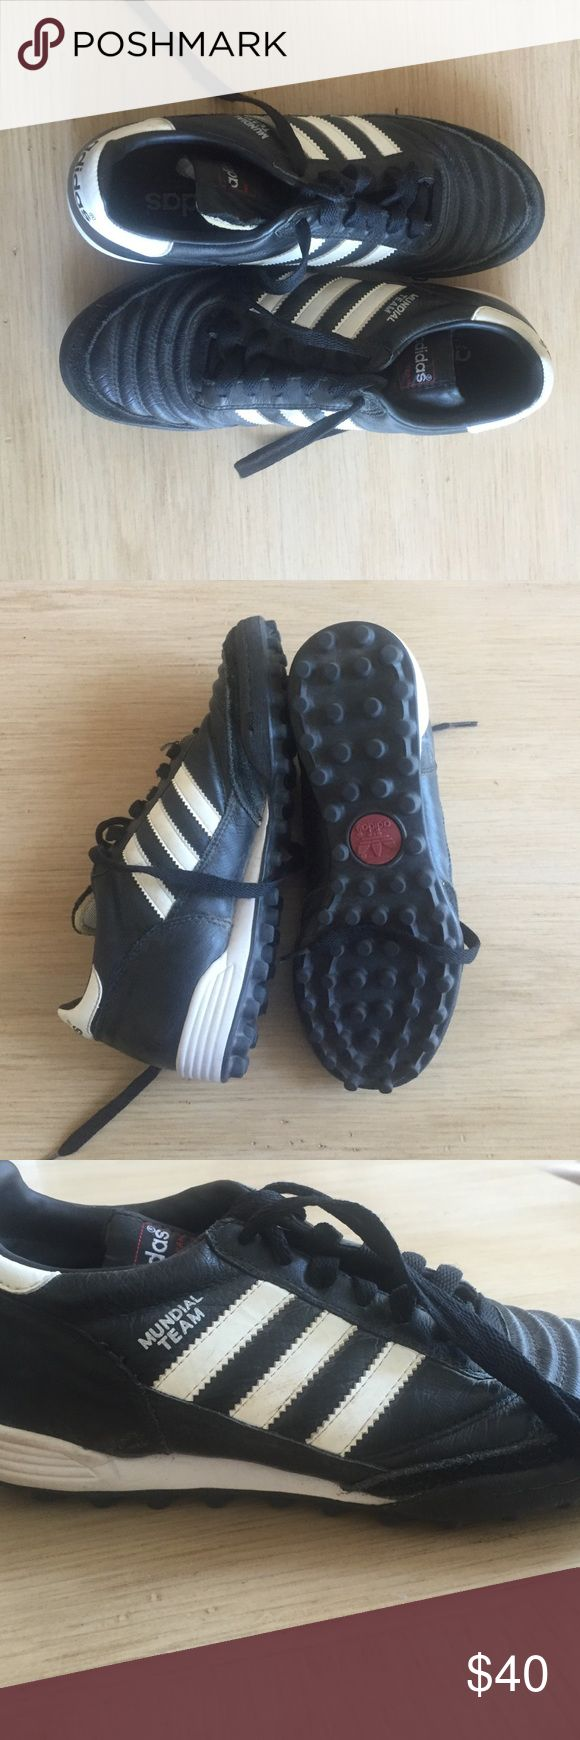 Adidas mundial team turf shoes Leather adidas turf shoes (size is a men's size but shoe is unisex) adidas Shoes Athletic Shoes